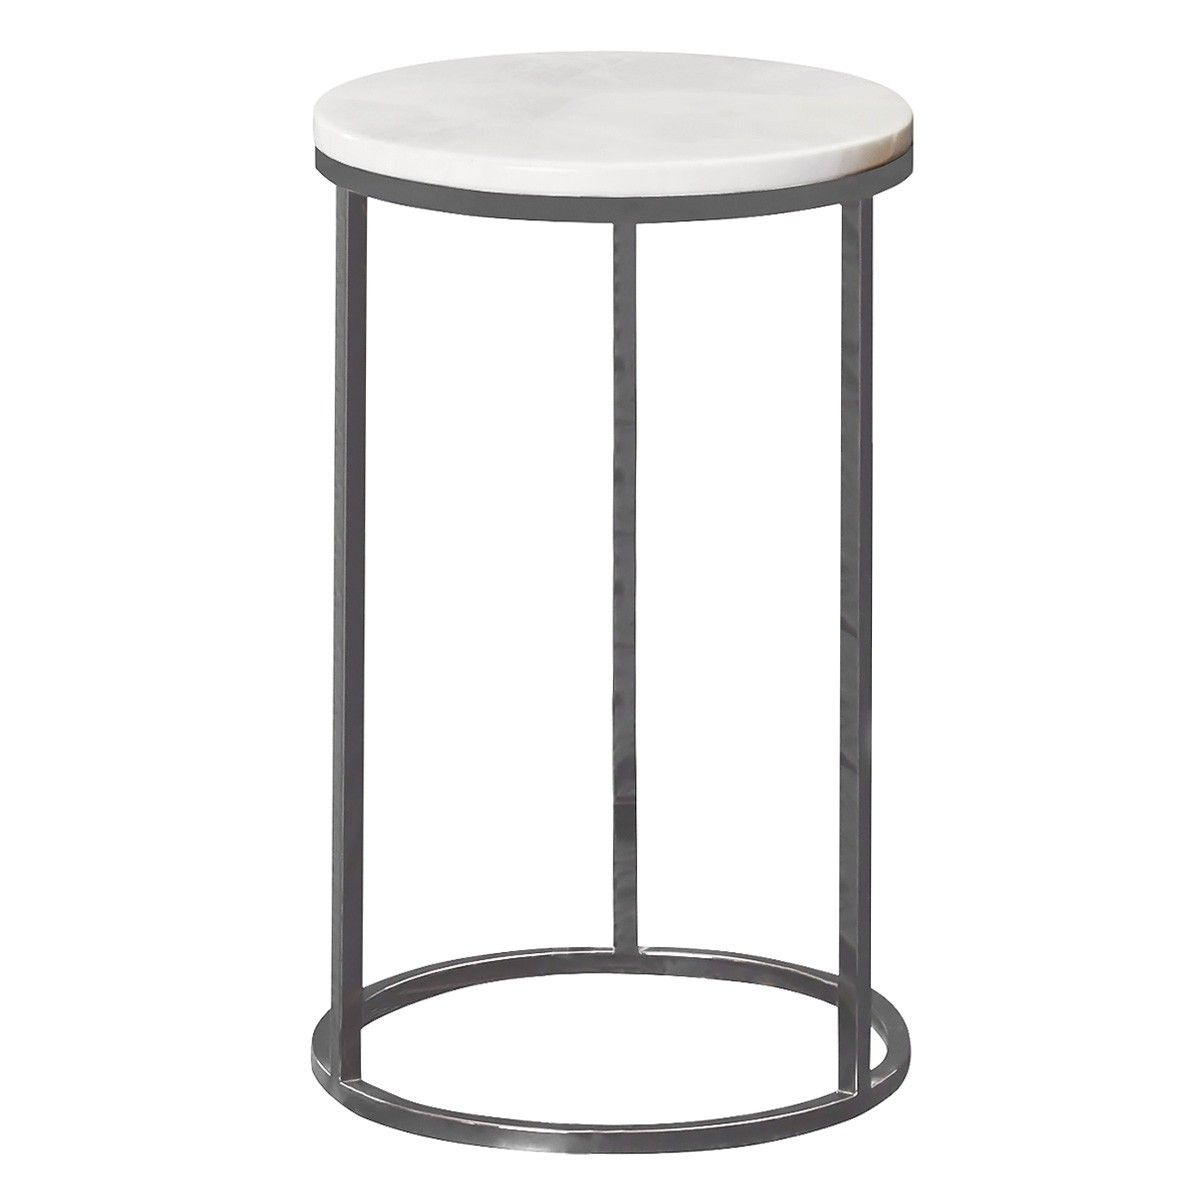 Round Bedside Table With Marble Top